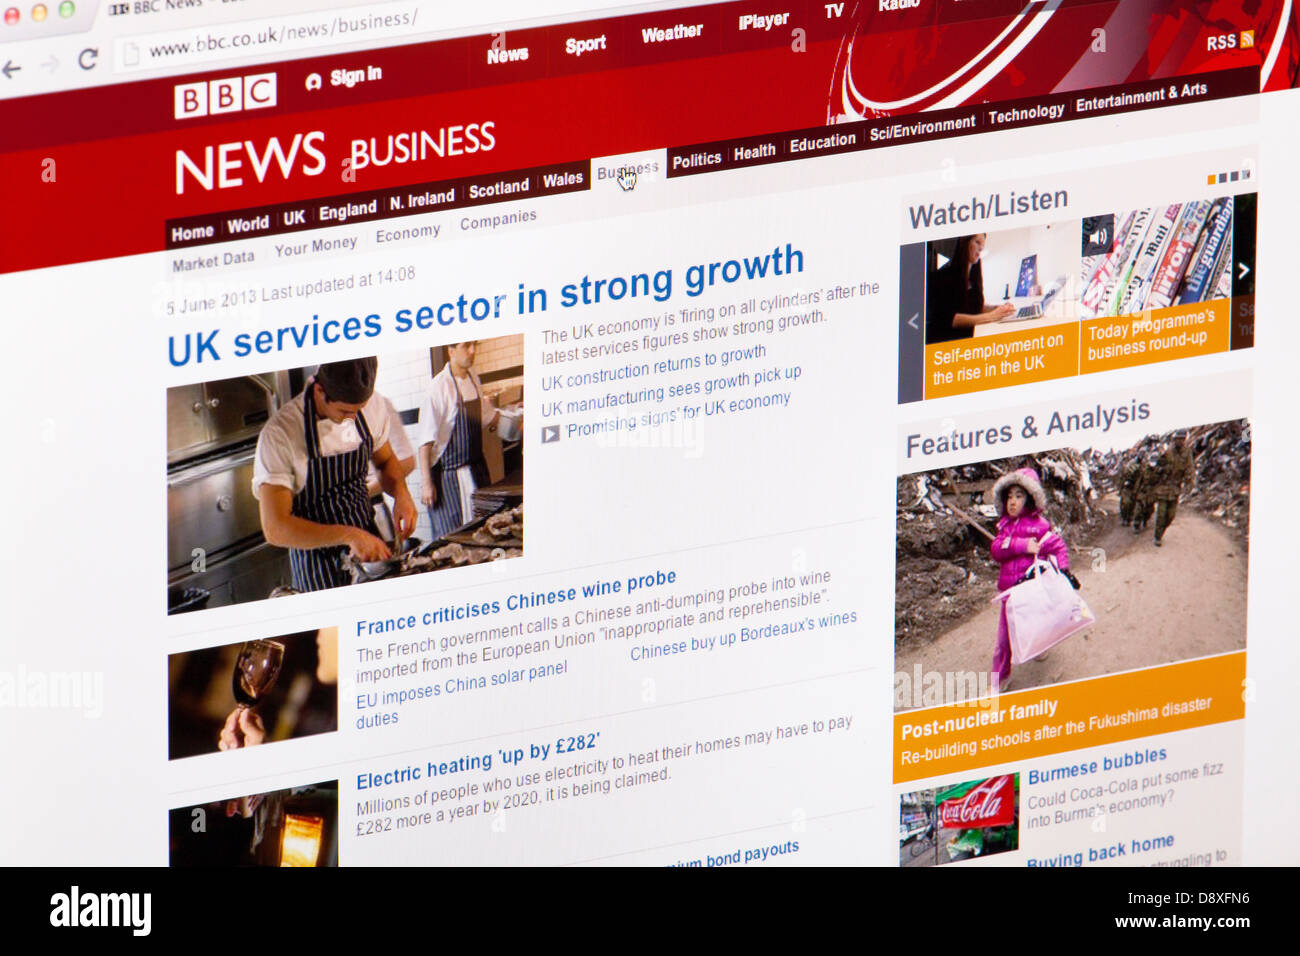 BBC News Business home page Website or web page on a laptop screen or computer monitor - Stock Image